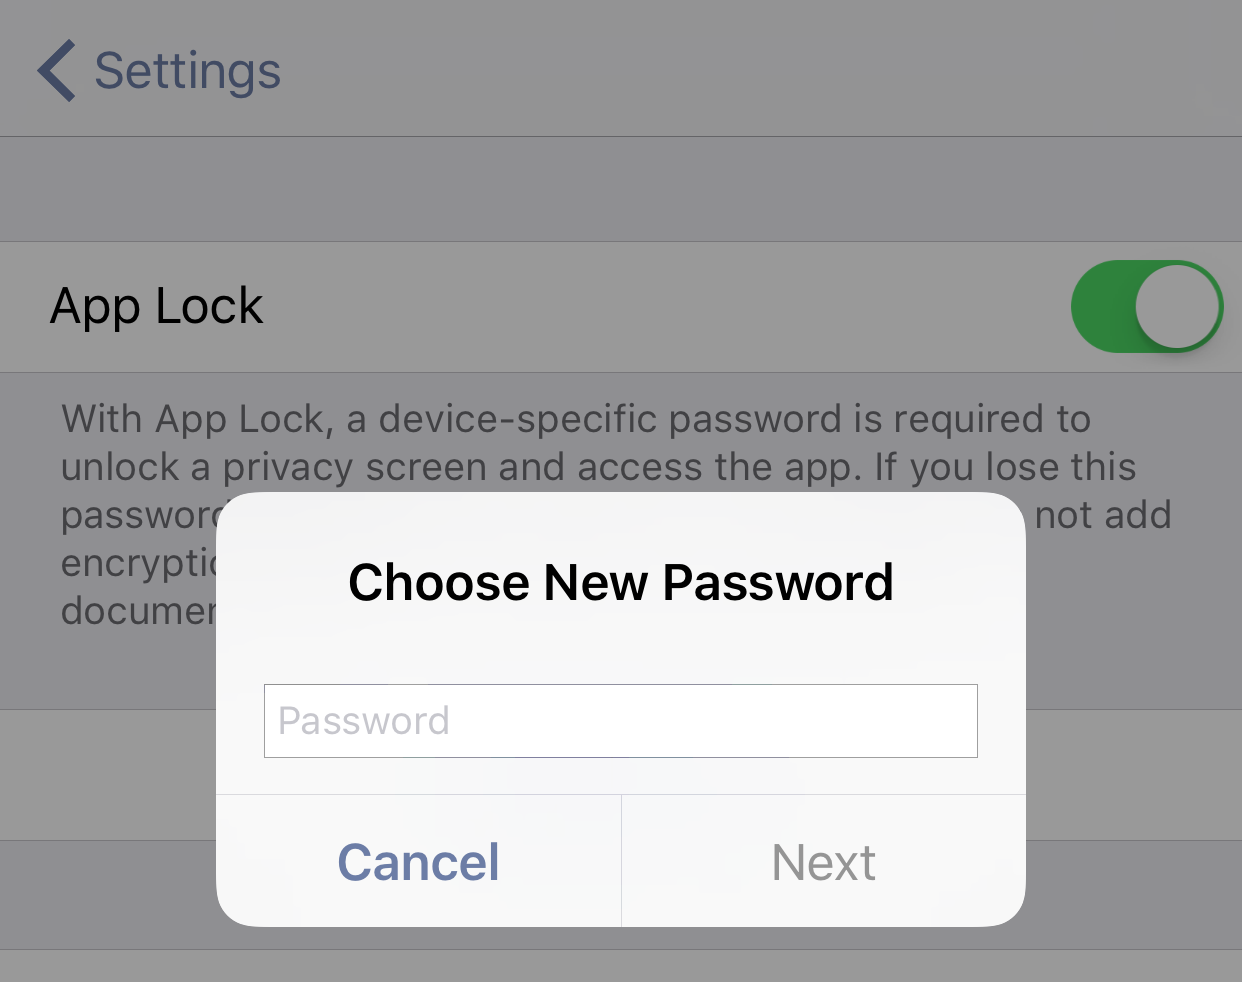 You are prompted to choose a new password when setting up App Lock for the first time.